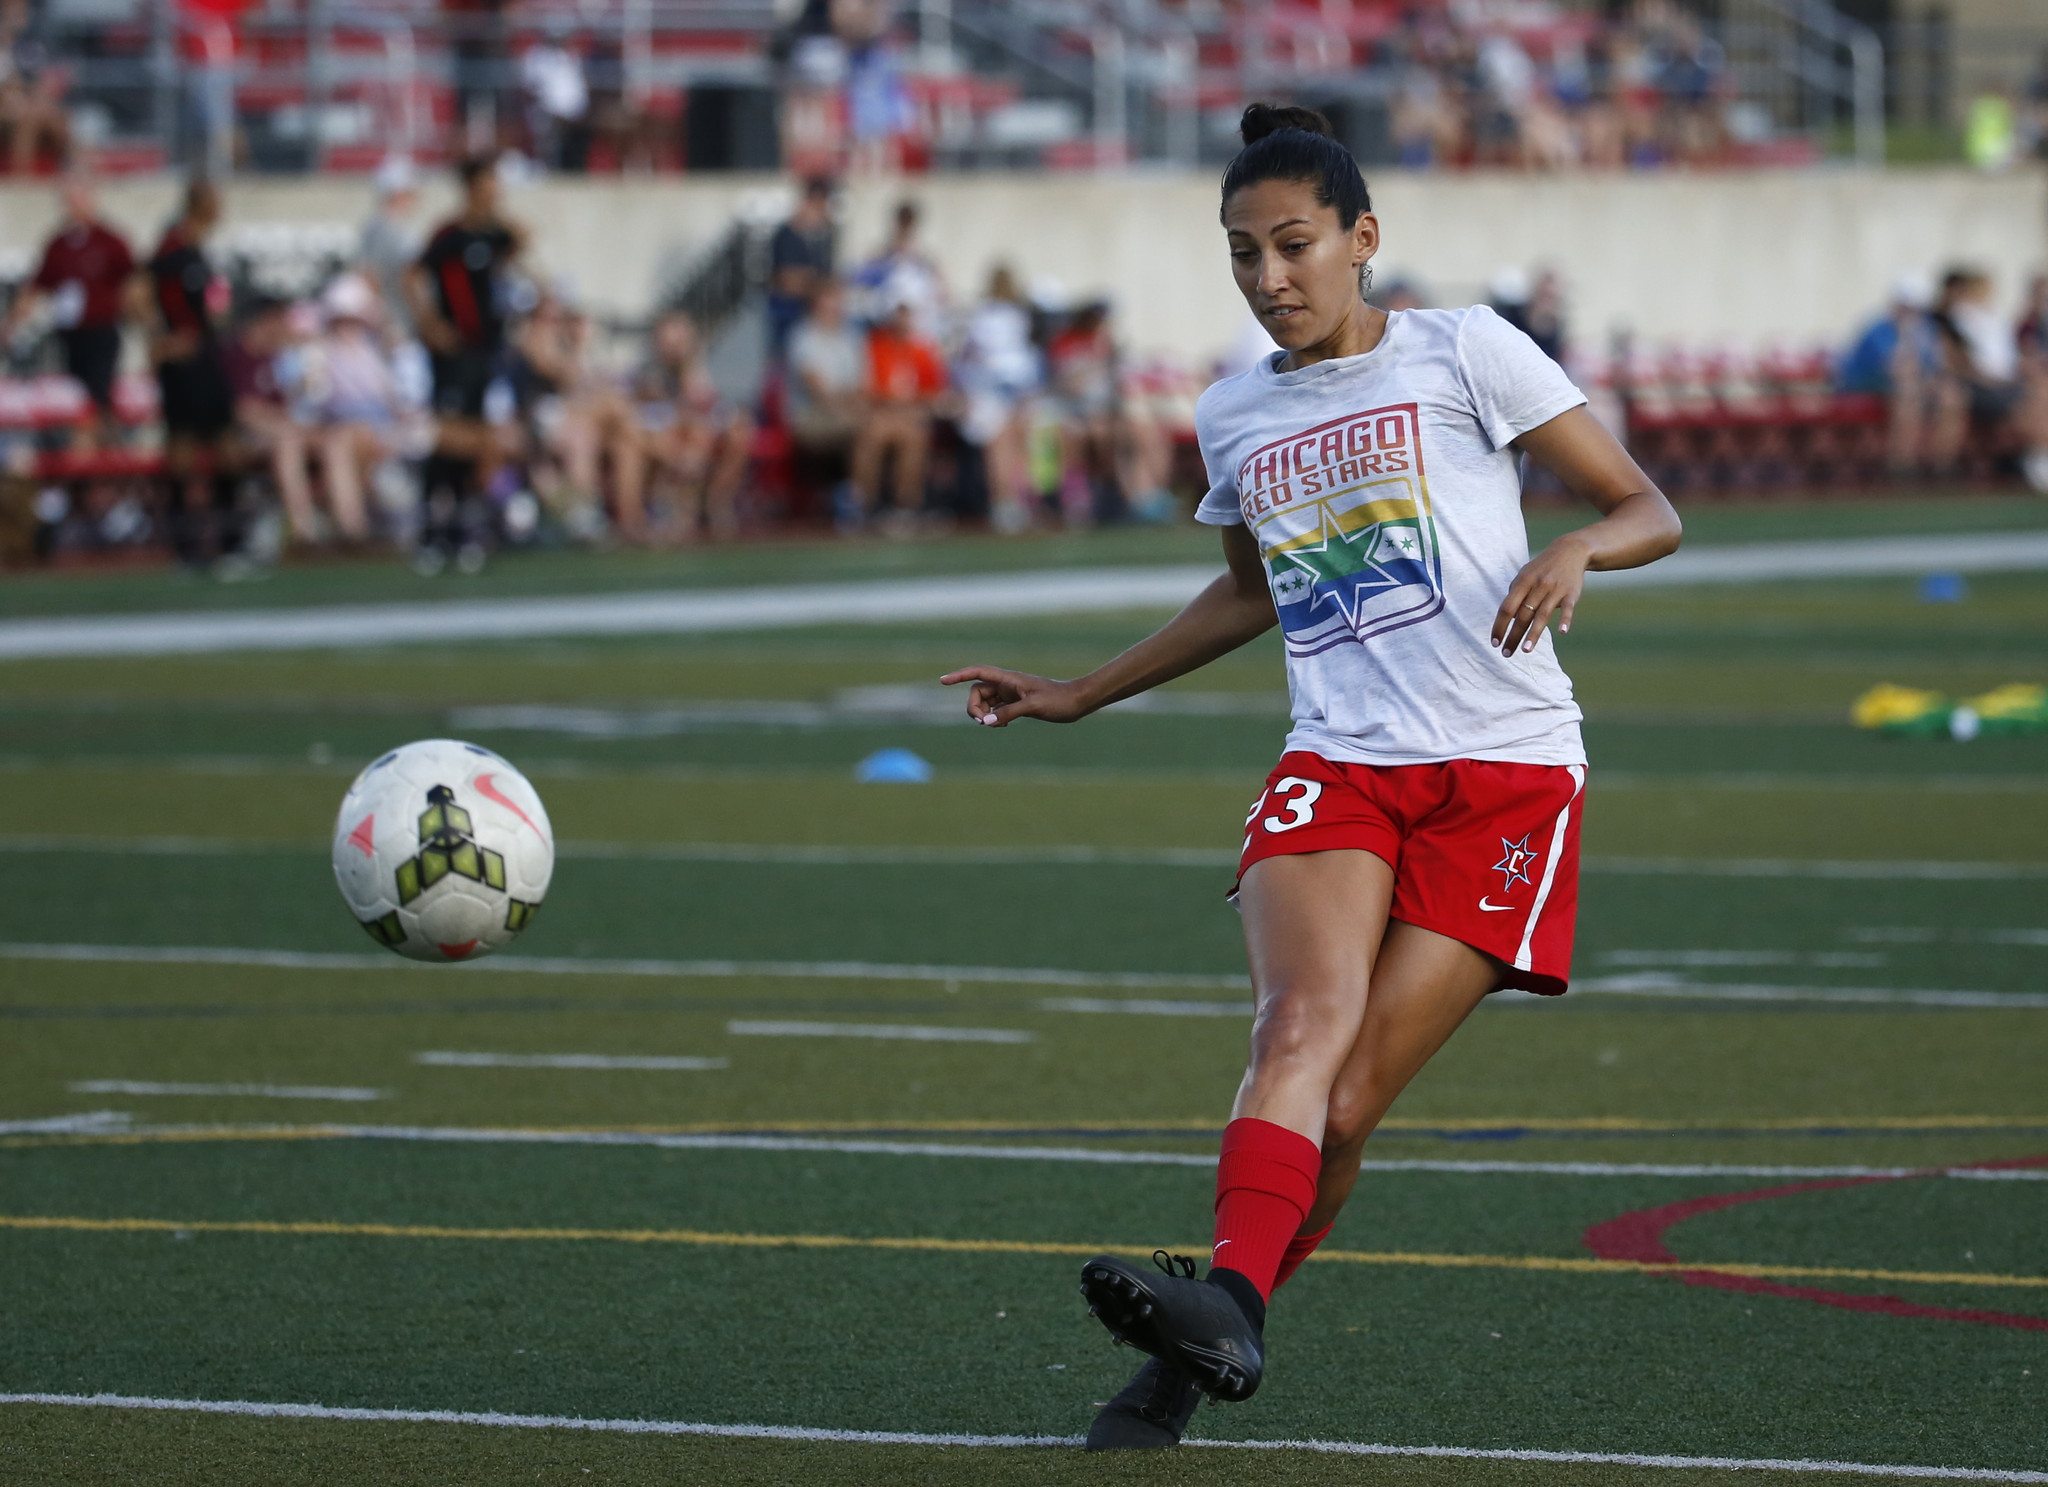 In women's pro soccer league, a few haves and many have-nots